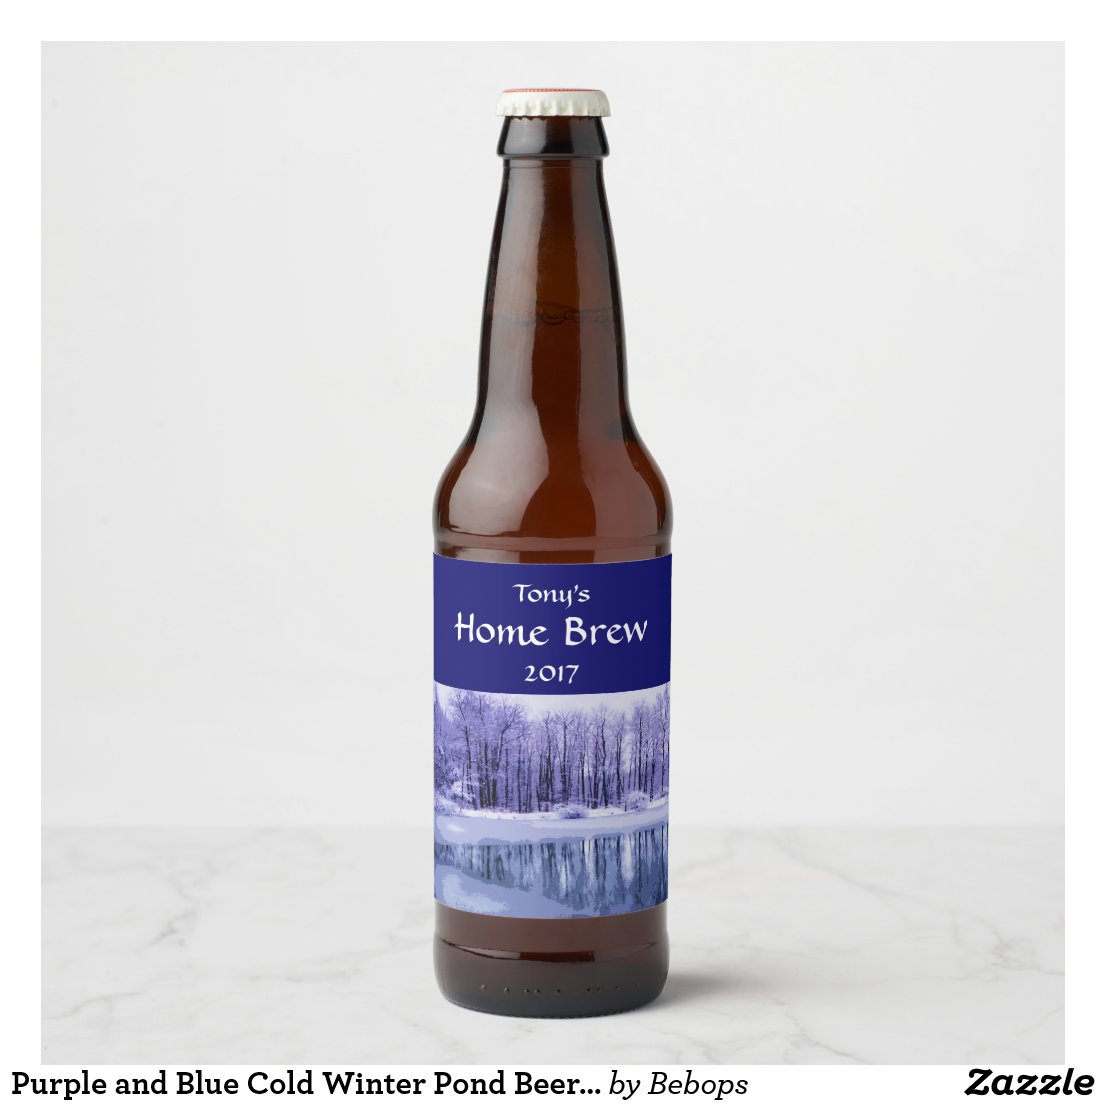 Purple and Blue Cold Winter Pond Beer Label